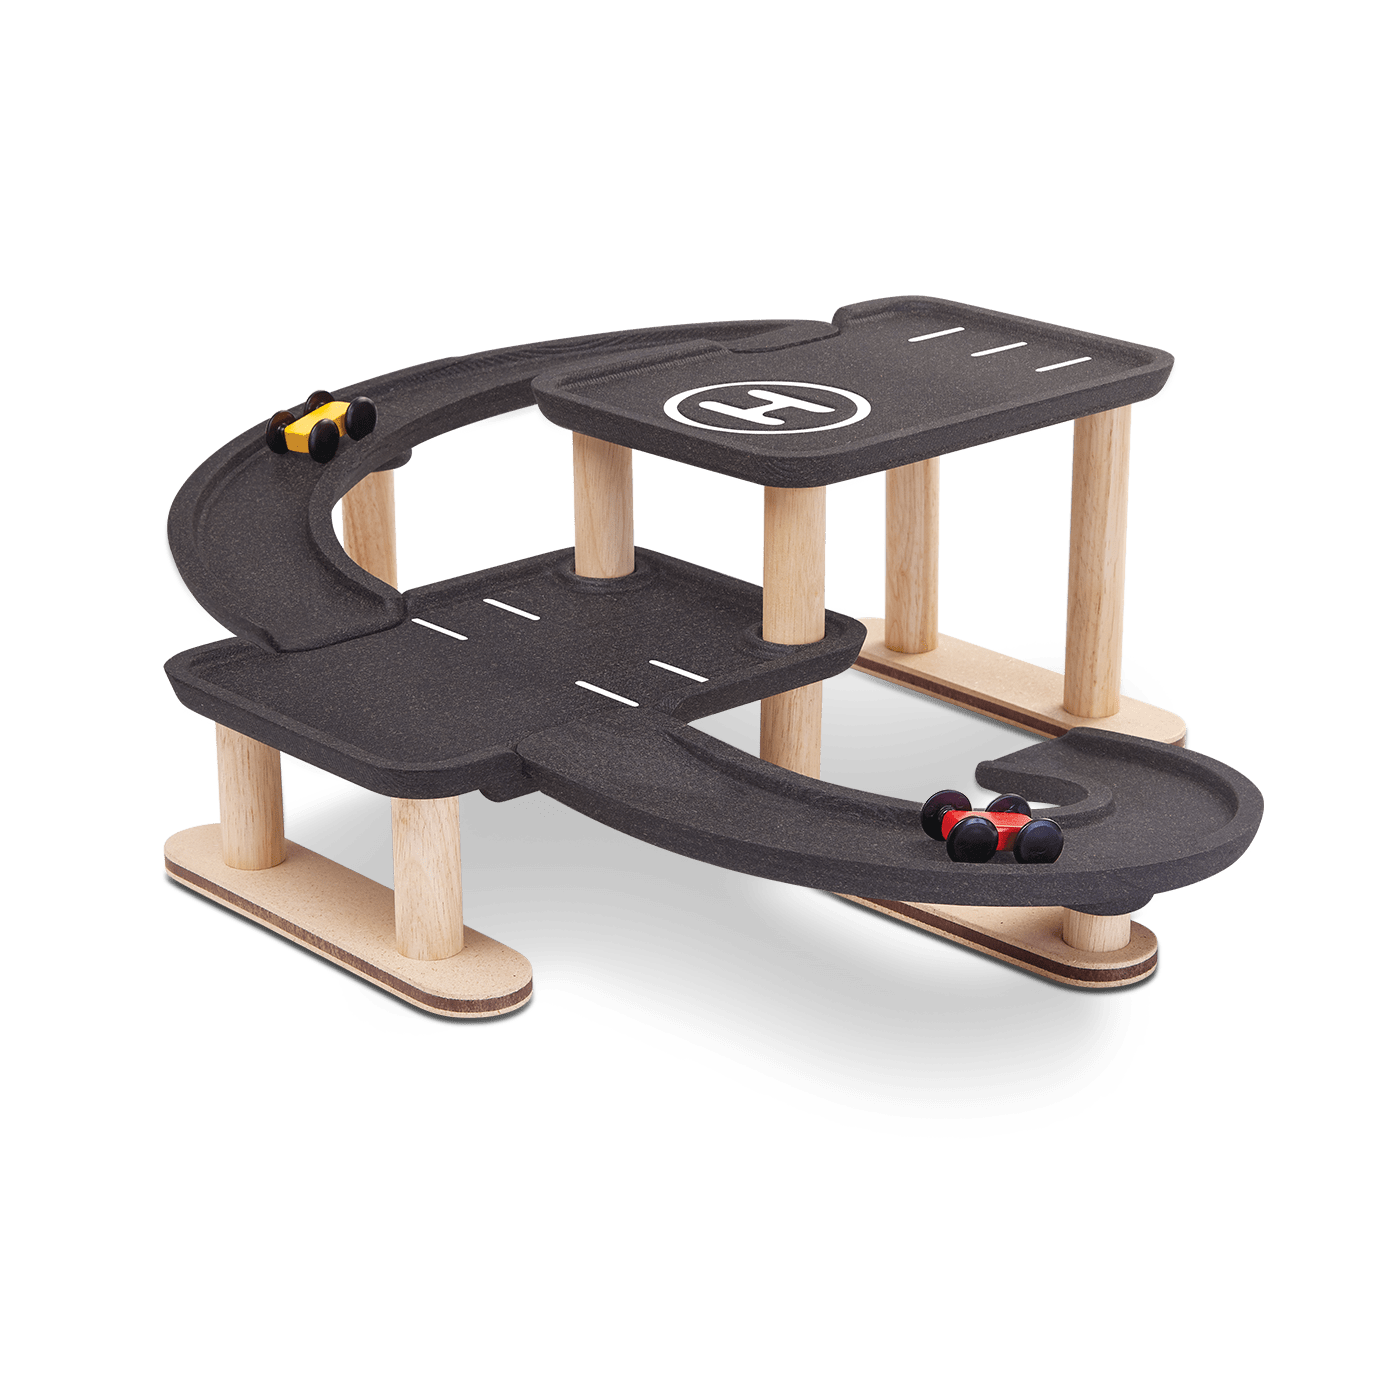 6270_PlanToys_RACE_N_PLAY_PARKING_GARAGE_Pretend_Play_Imagination_Coordination_Social_Language_and_Communications_Fine_Motor_3yrs_Wooden_toys_Education_toys_Safety_Toys_Non-toxic_0.png